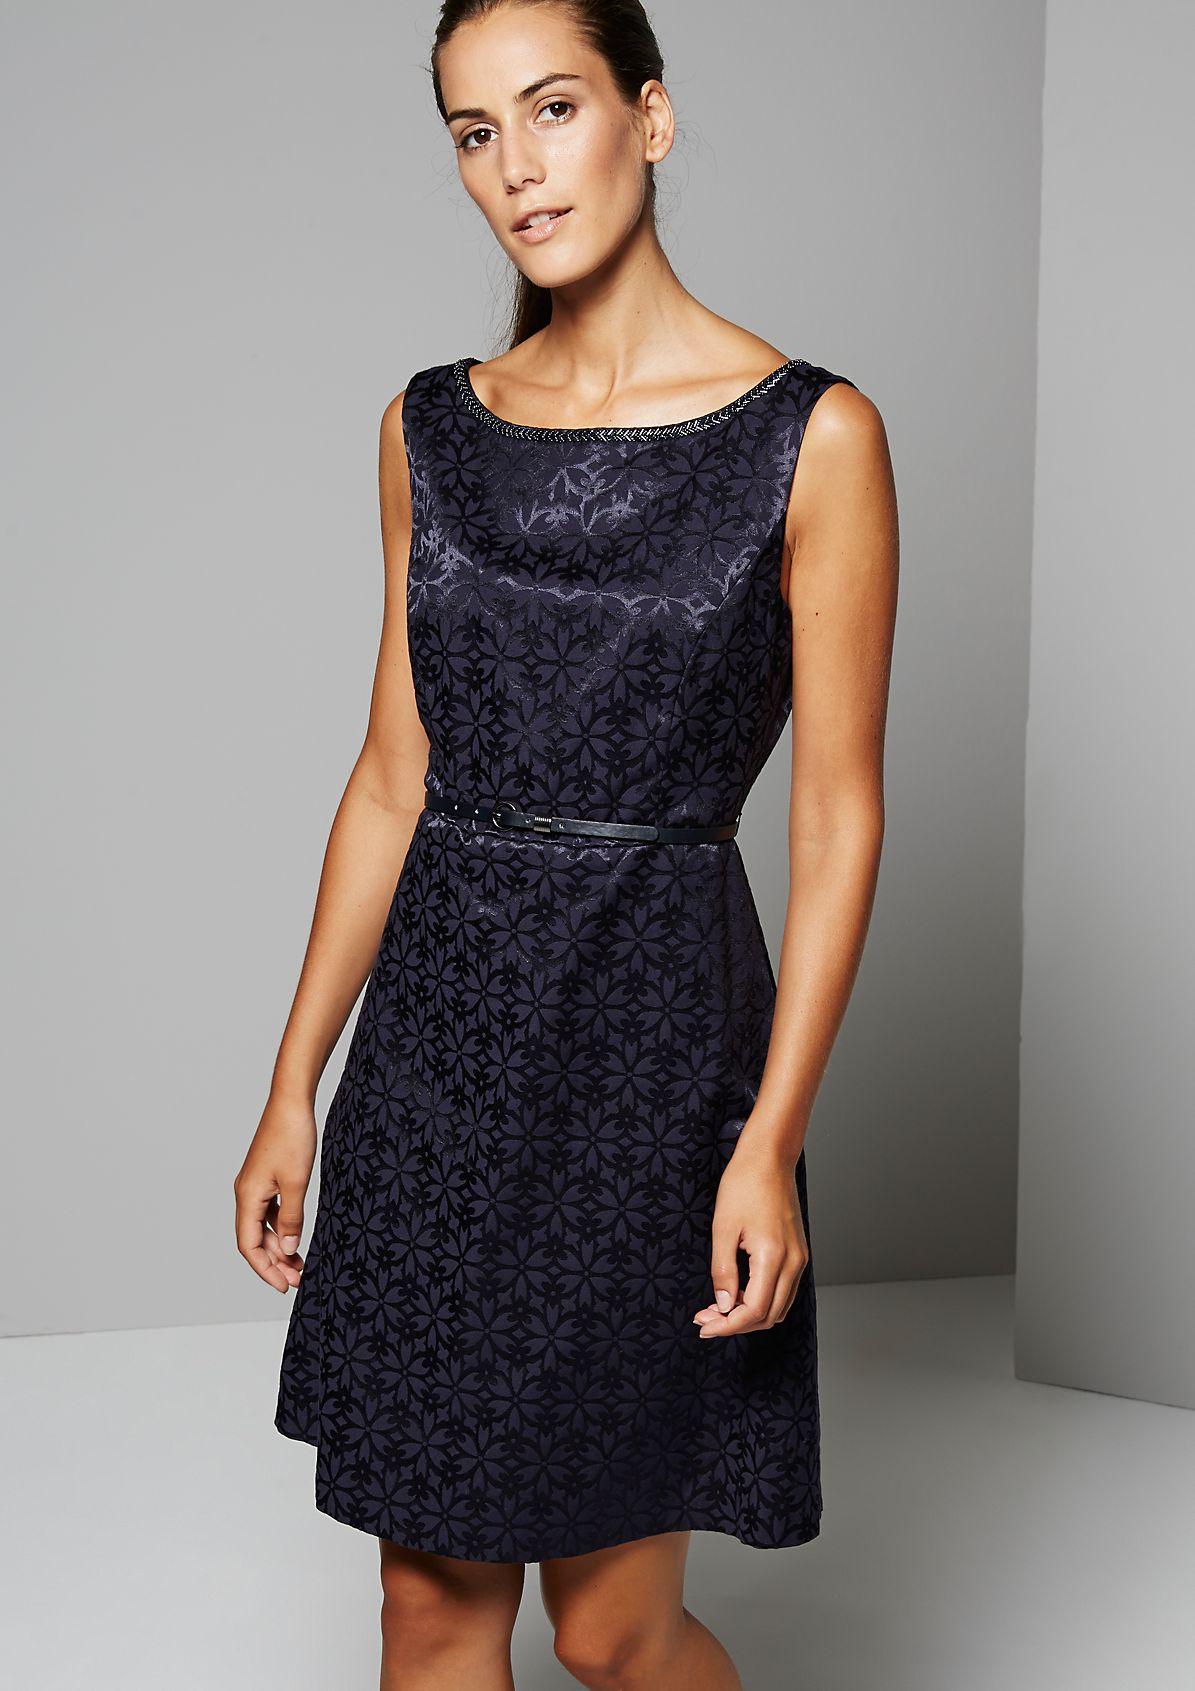 Elegant evening dress with a beautiful jacquard pattern from s.Oliver